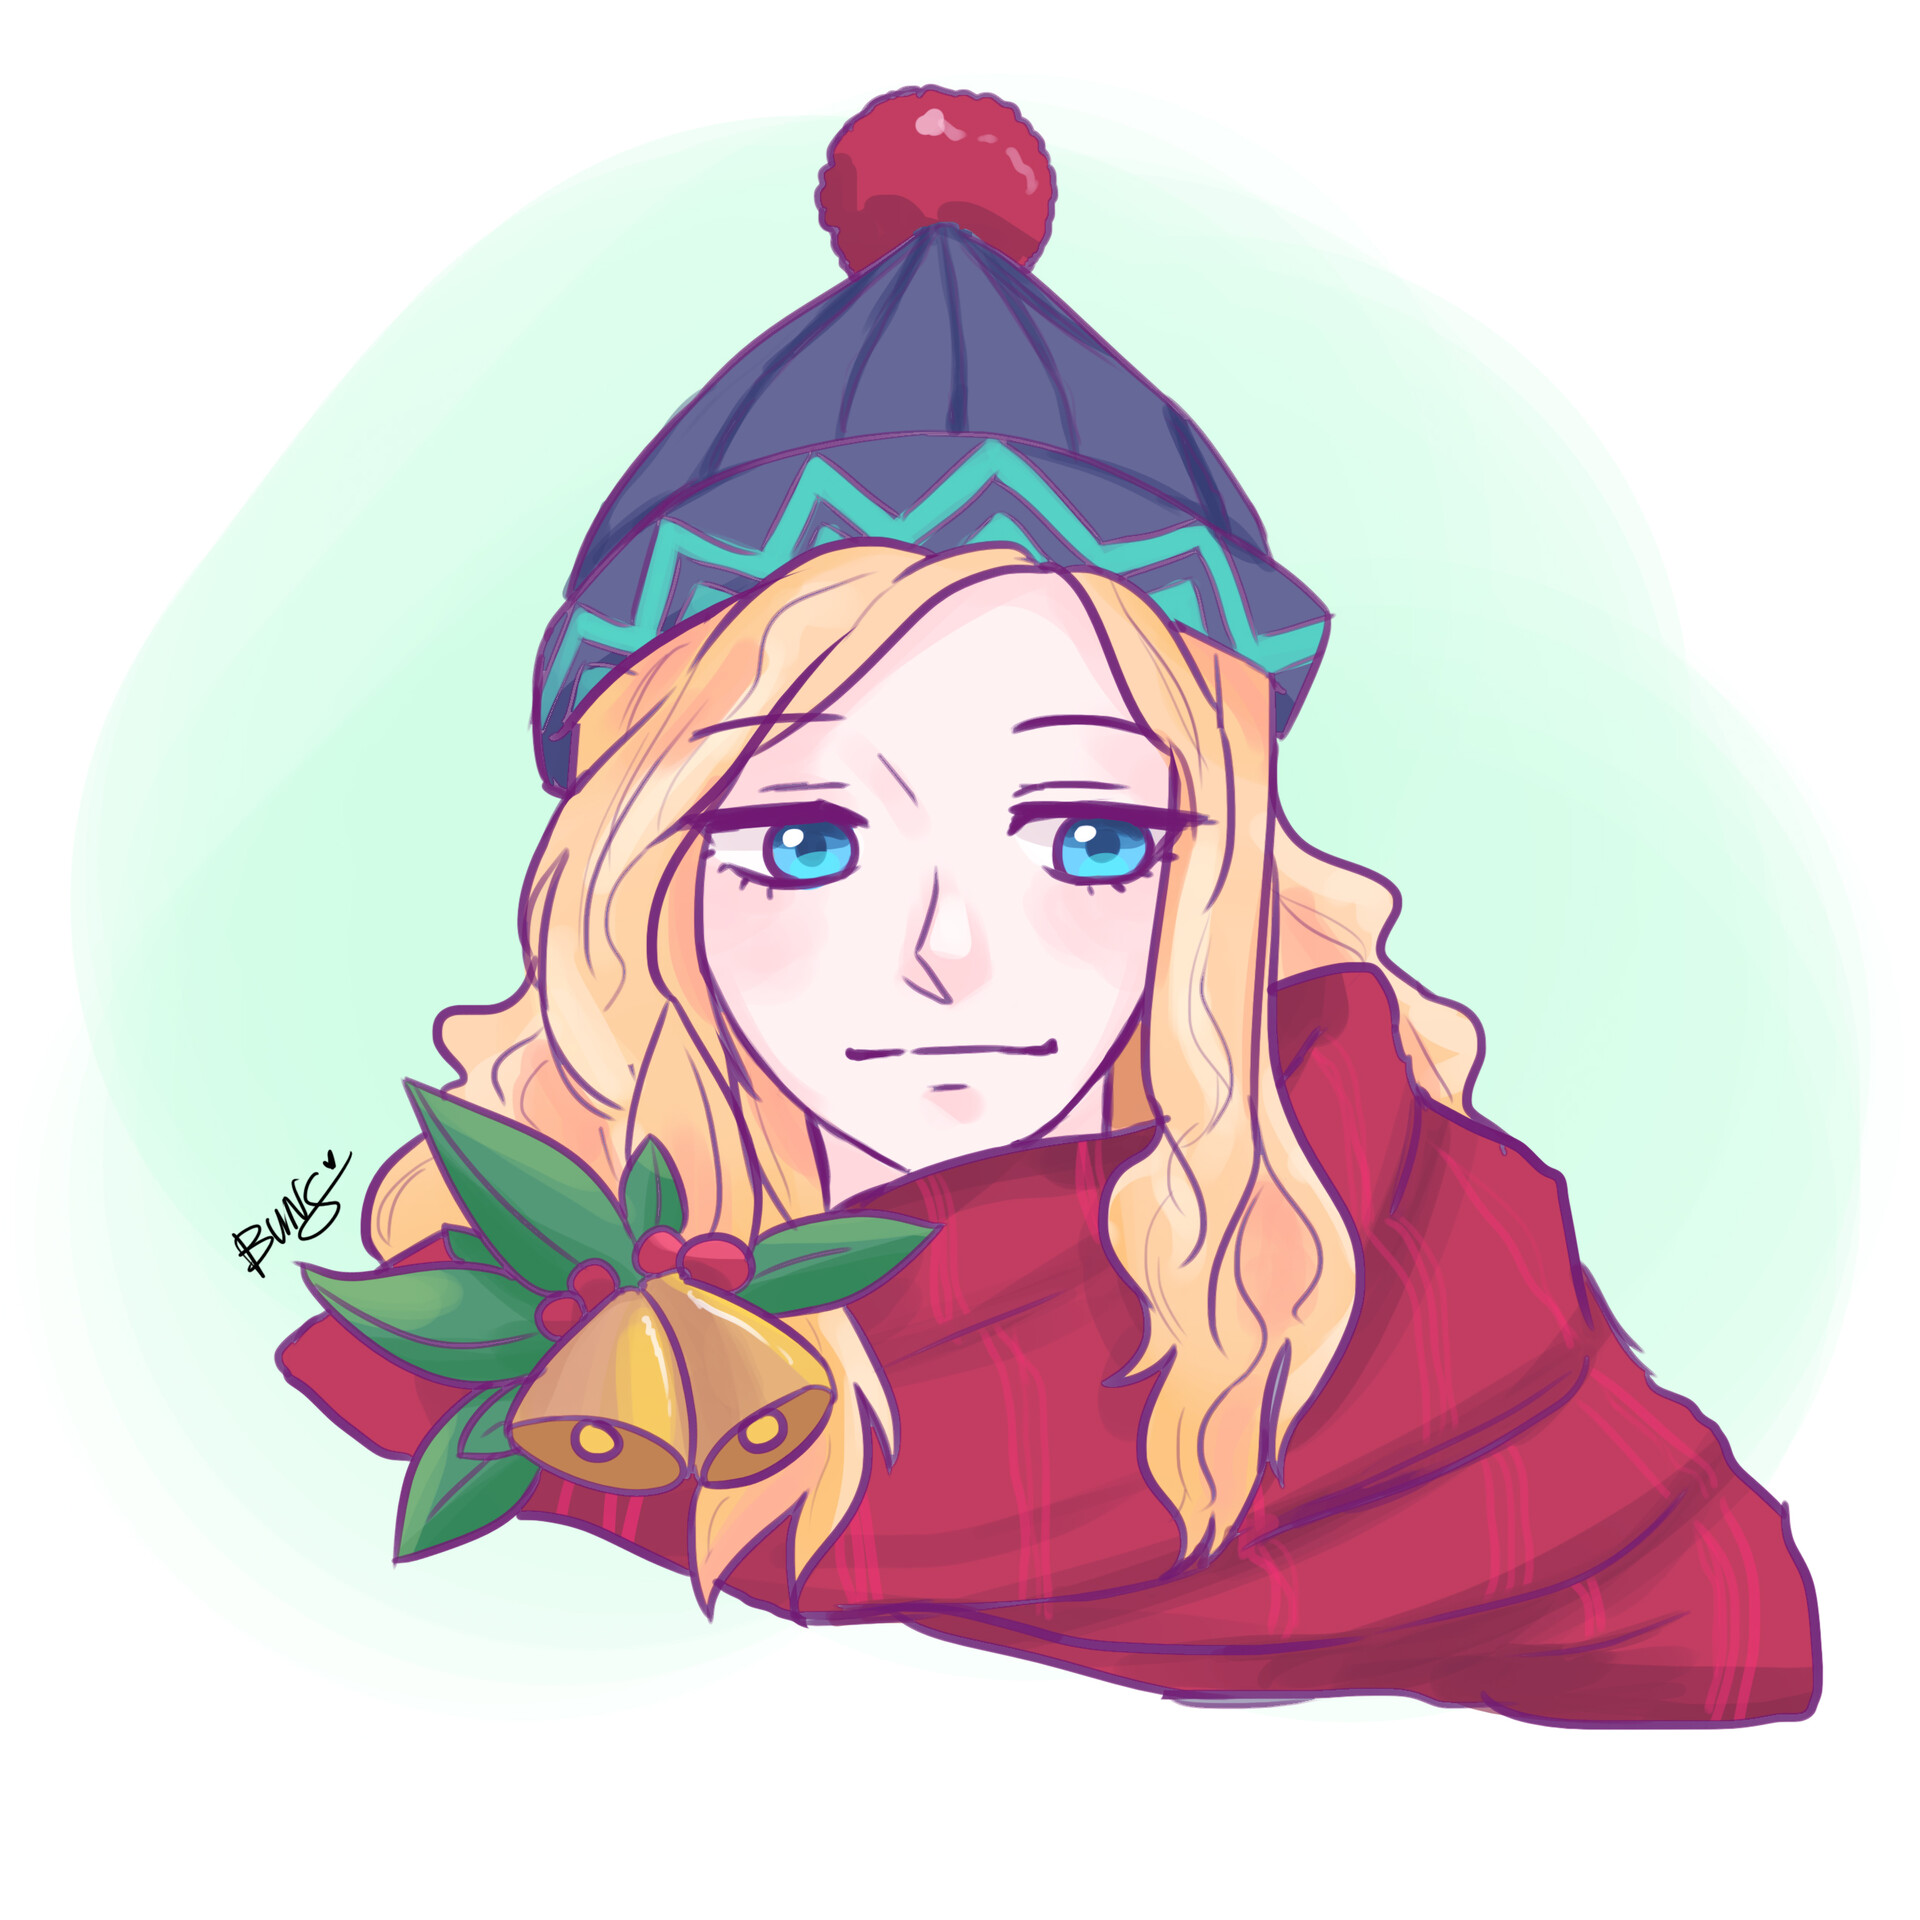 Buns Arts Mobile Legends Christmas Cheers Collection Free online avatar creator, profile picture creator. mobile legends christmas cheers collection